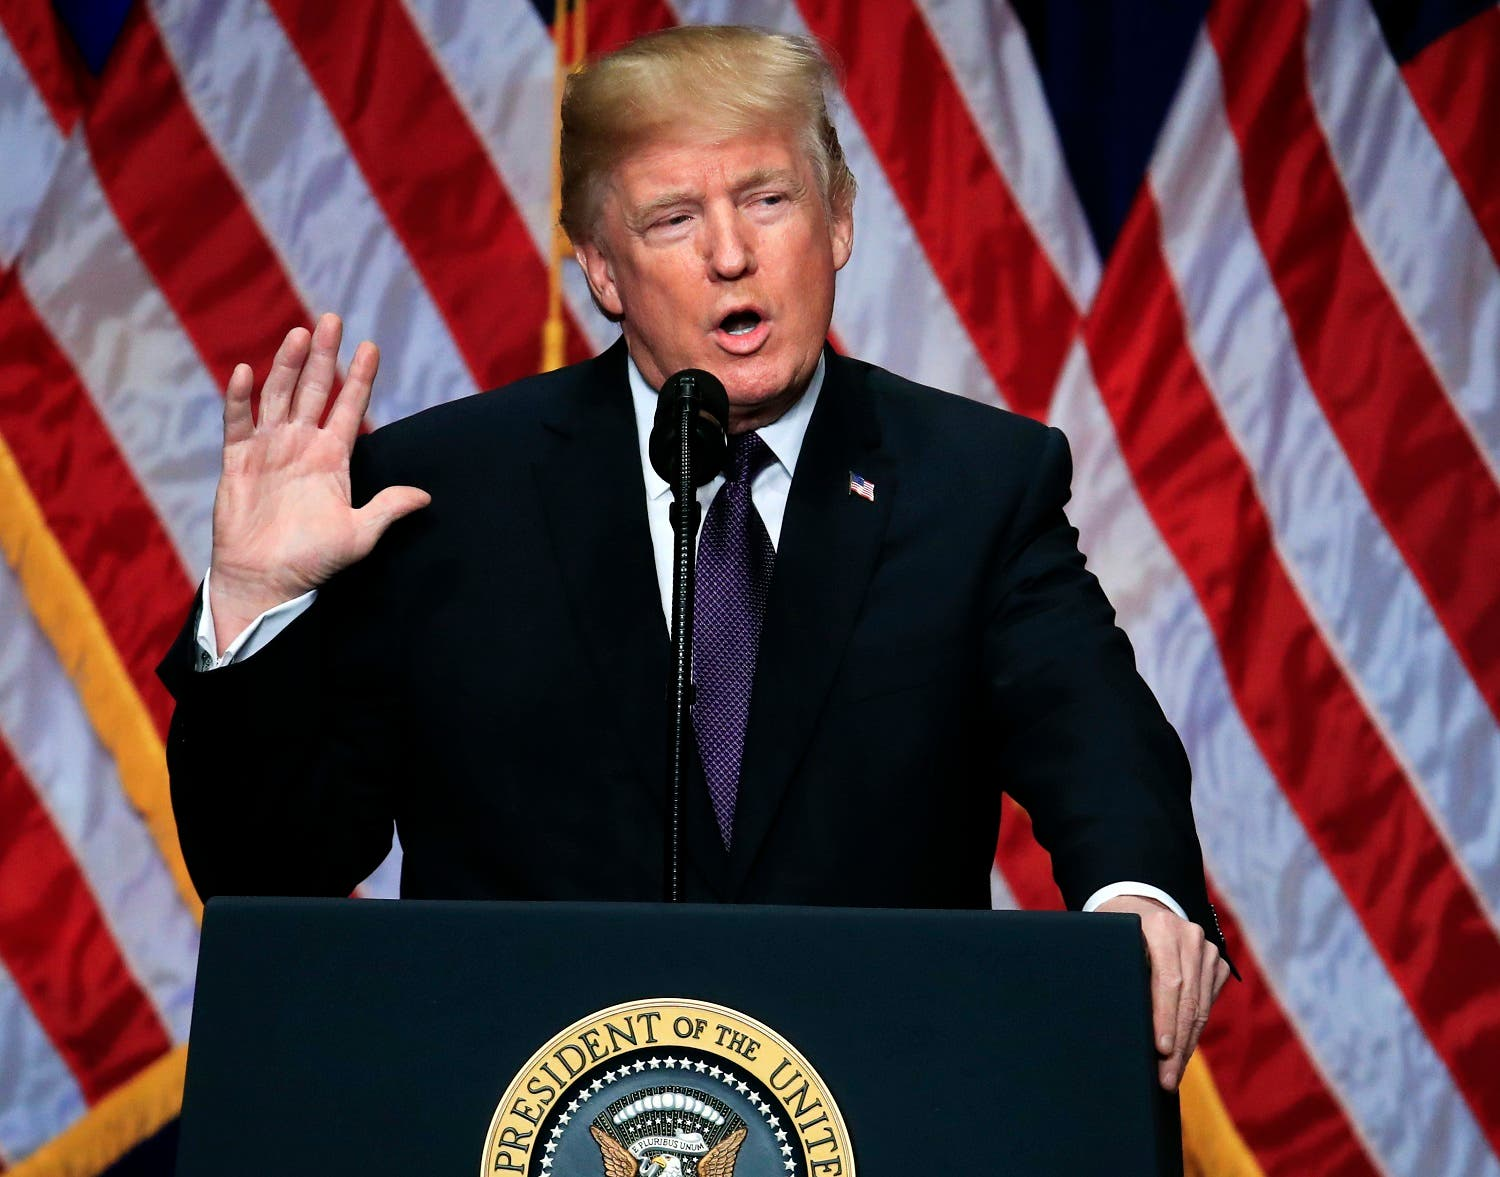 President Donald Trump lays out a national security strategy that envisions nations in perpetual competition, reverses Obama-era warnings on climate change, and de-emphasizes multinational agreements, in Washington, Monday, Dec. 18, 2017. (AP)